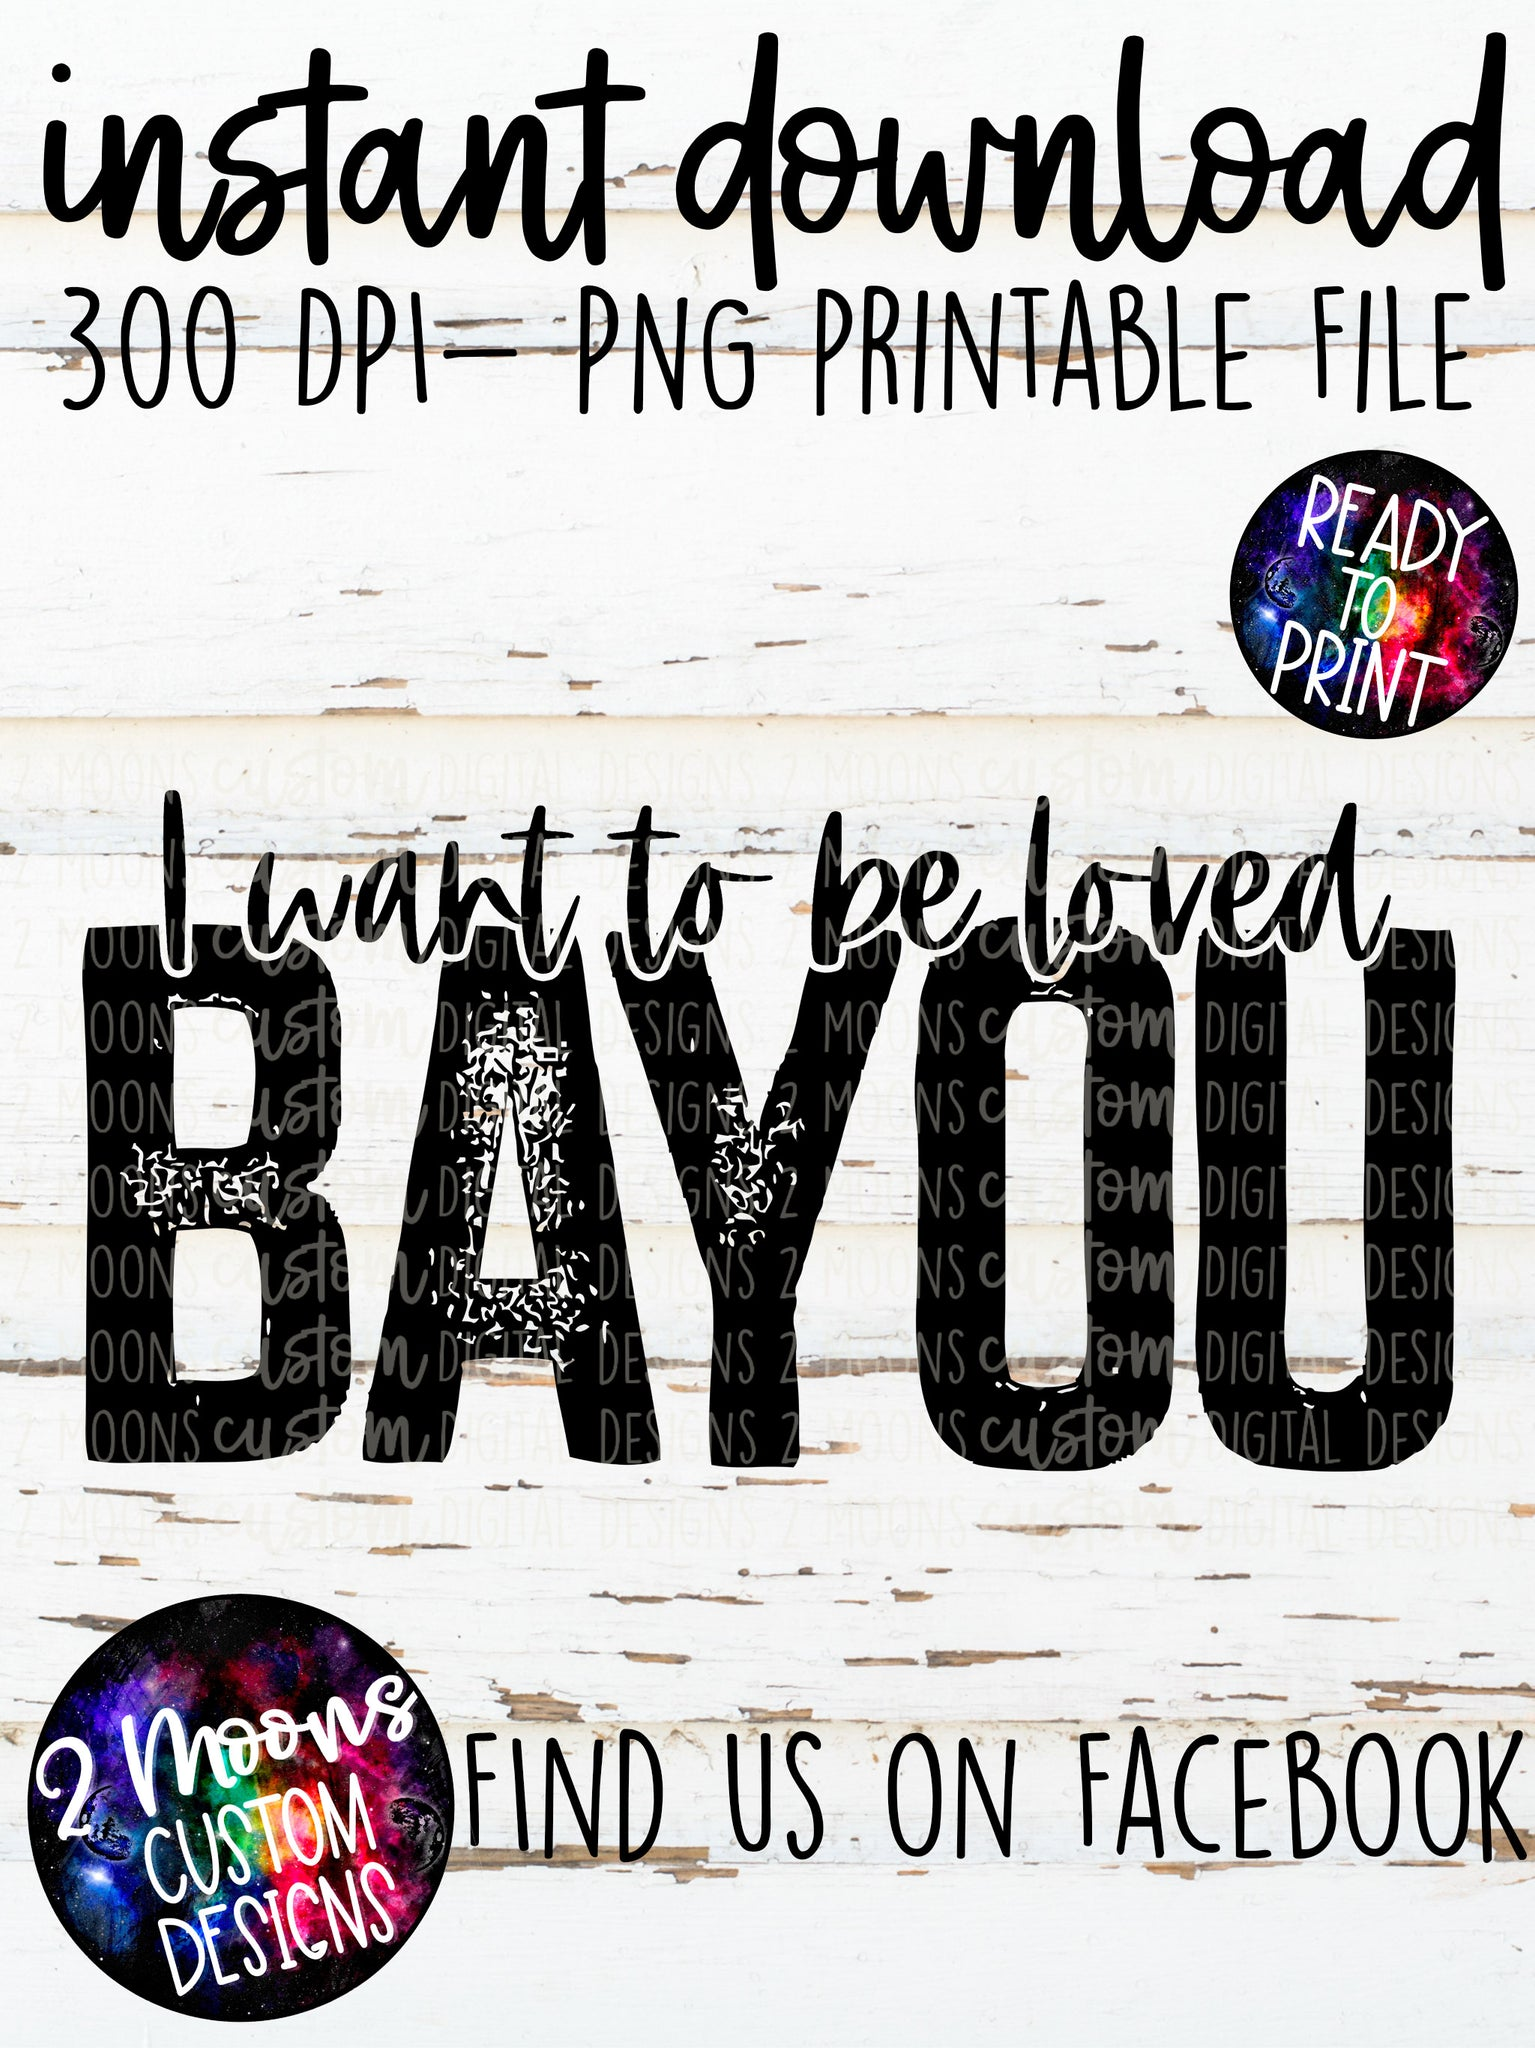 I want to be loved bayou